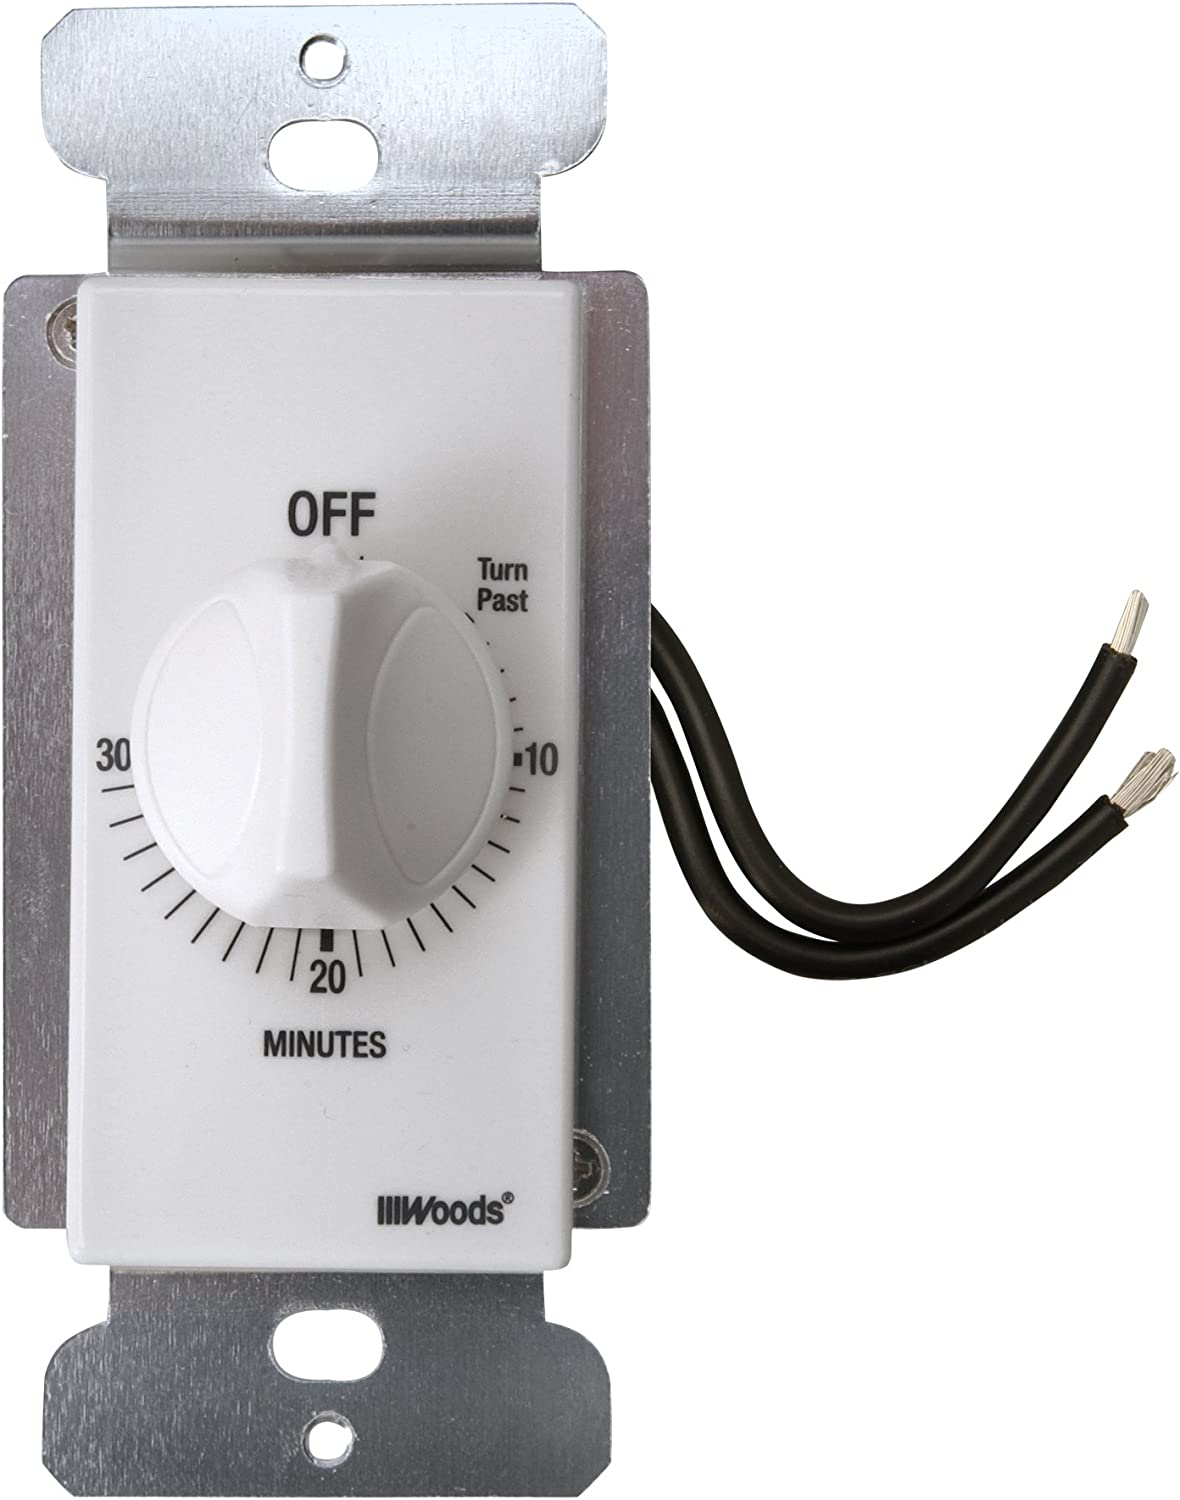 Woods 59714 In-Wall 30 Minute Spring Wound Timer, White